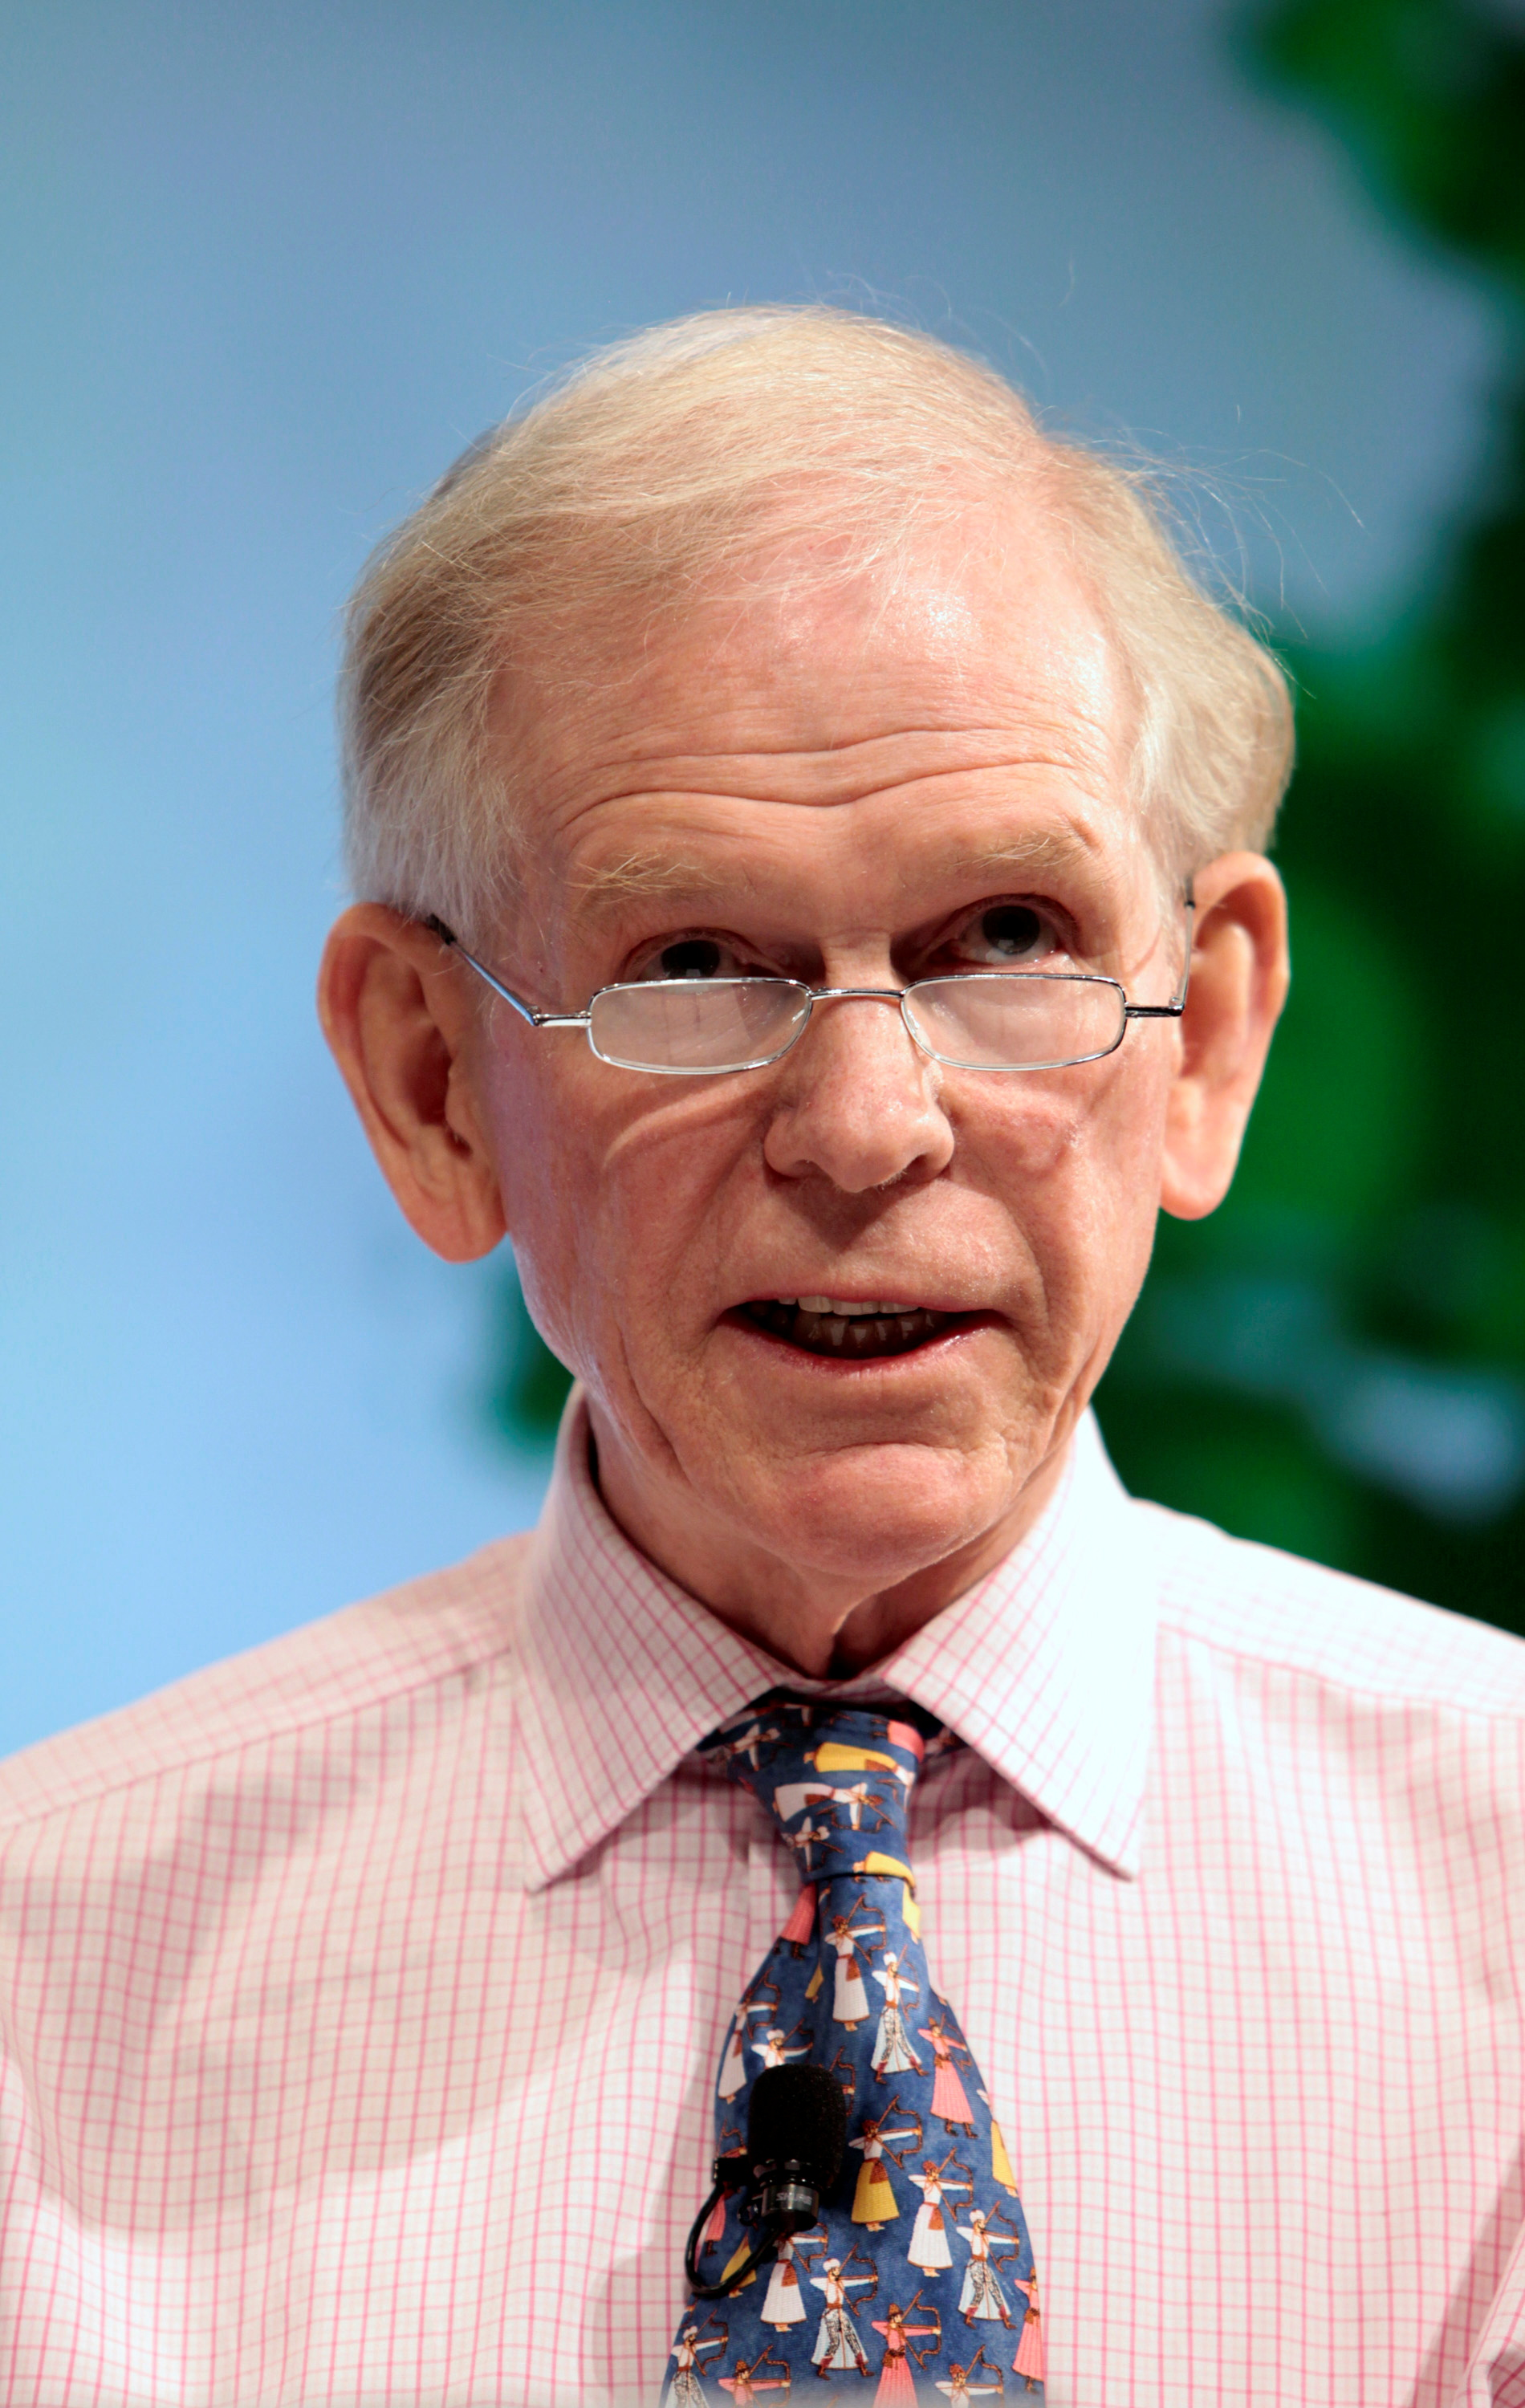 Jeremy Grantham, Co-founder and Chief Investment Strategist of GMO, speaks on financial innovation at Pace University in New York October 16, 2009. REUTERS/Nicholas Roberts/File Photo